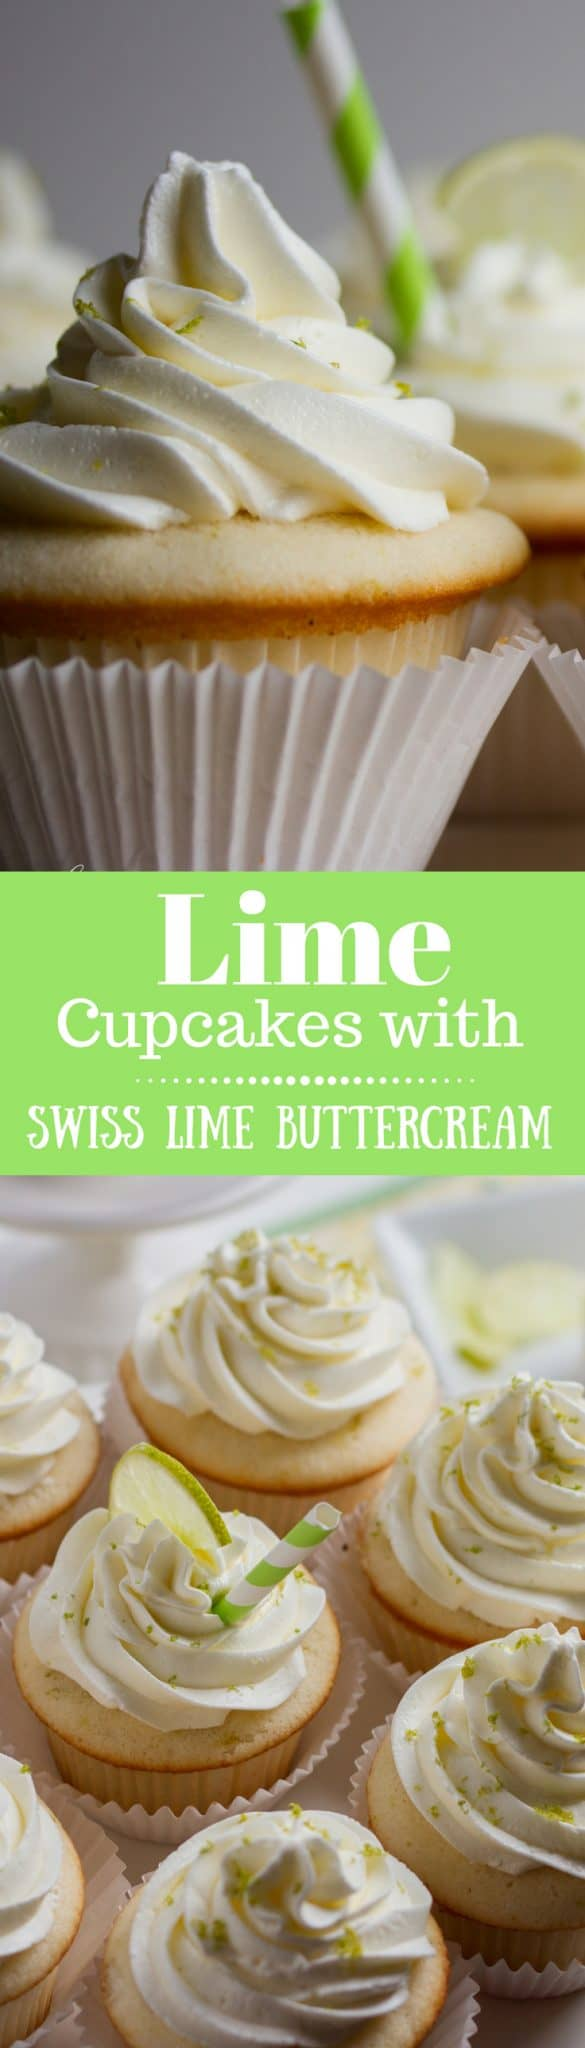 Tender white Lime Cupcakes with Swiss Lime Buttercream and just the right amount of zing from the lime juice. www.savingdessert.com